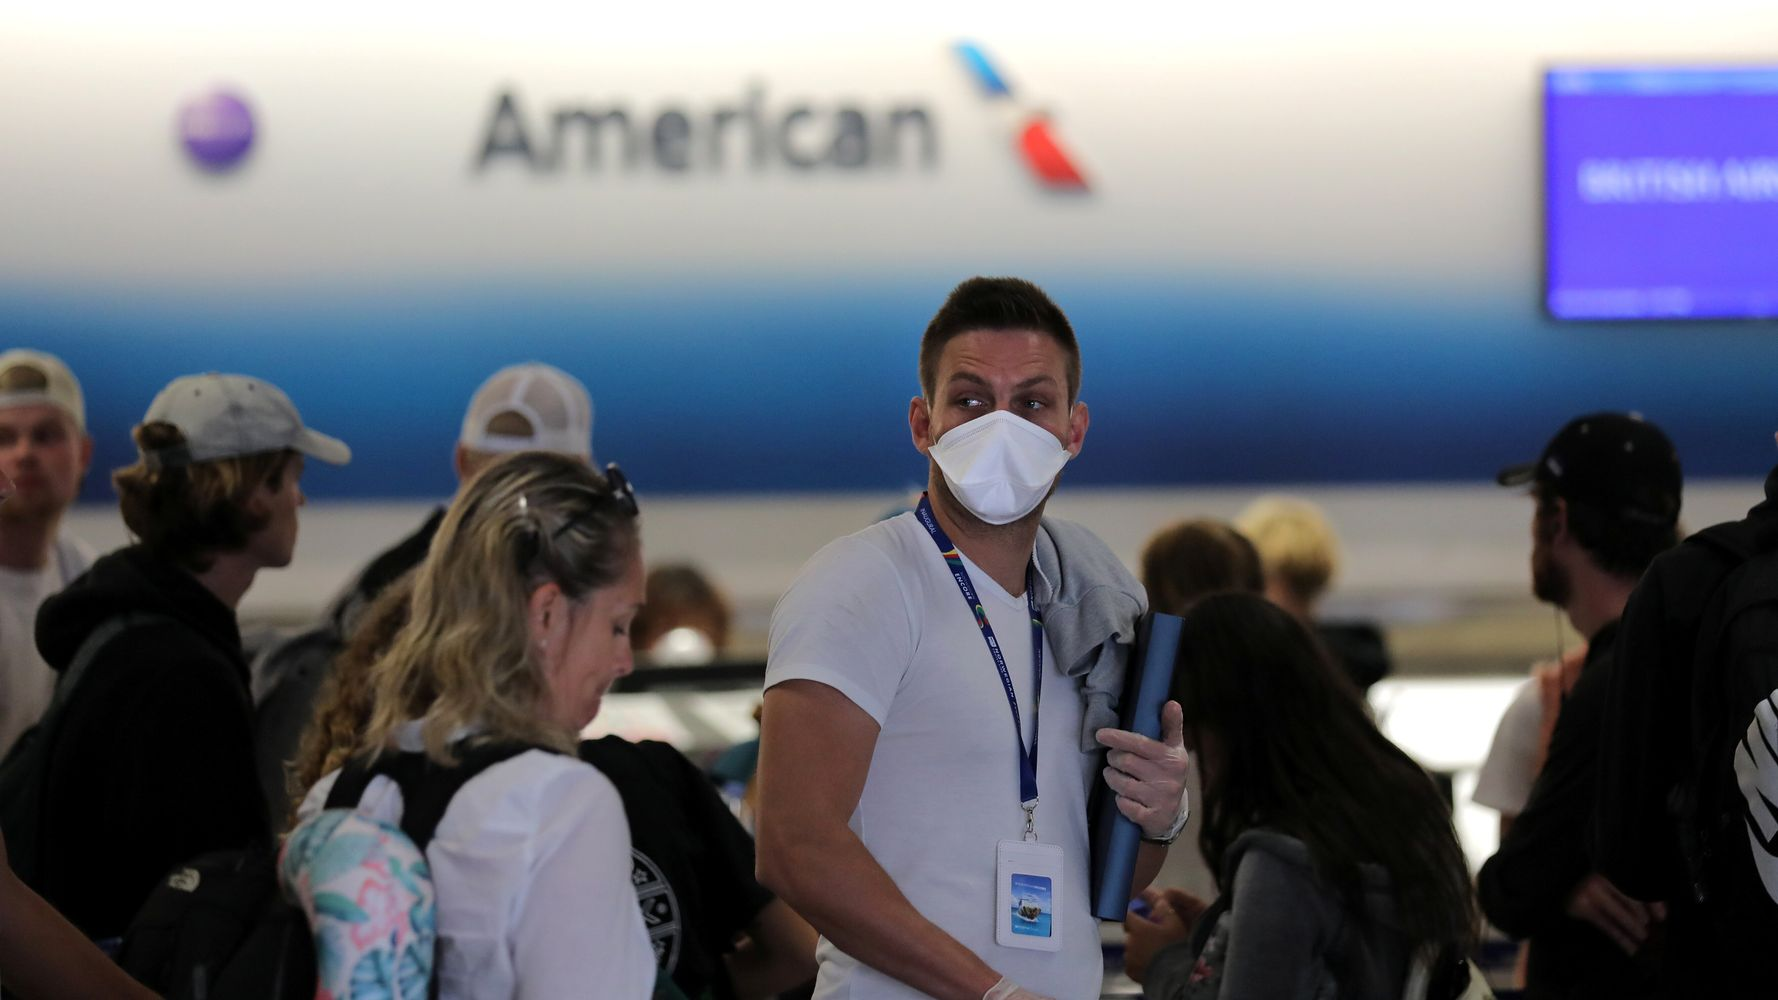 Don't Force Passengers To Wear Masks, U.S. Airlines Tell Crews Amid Pandemic